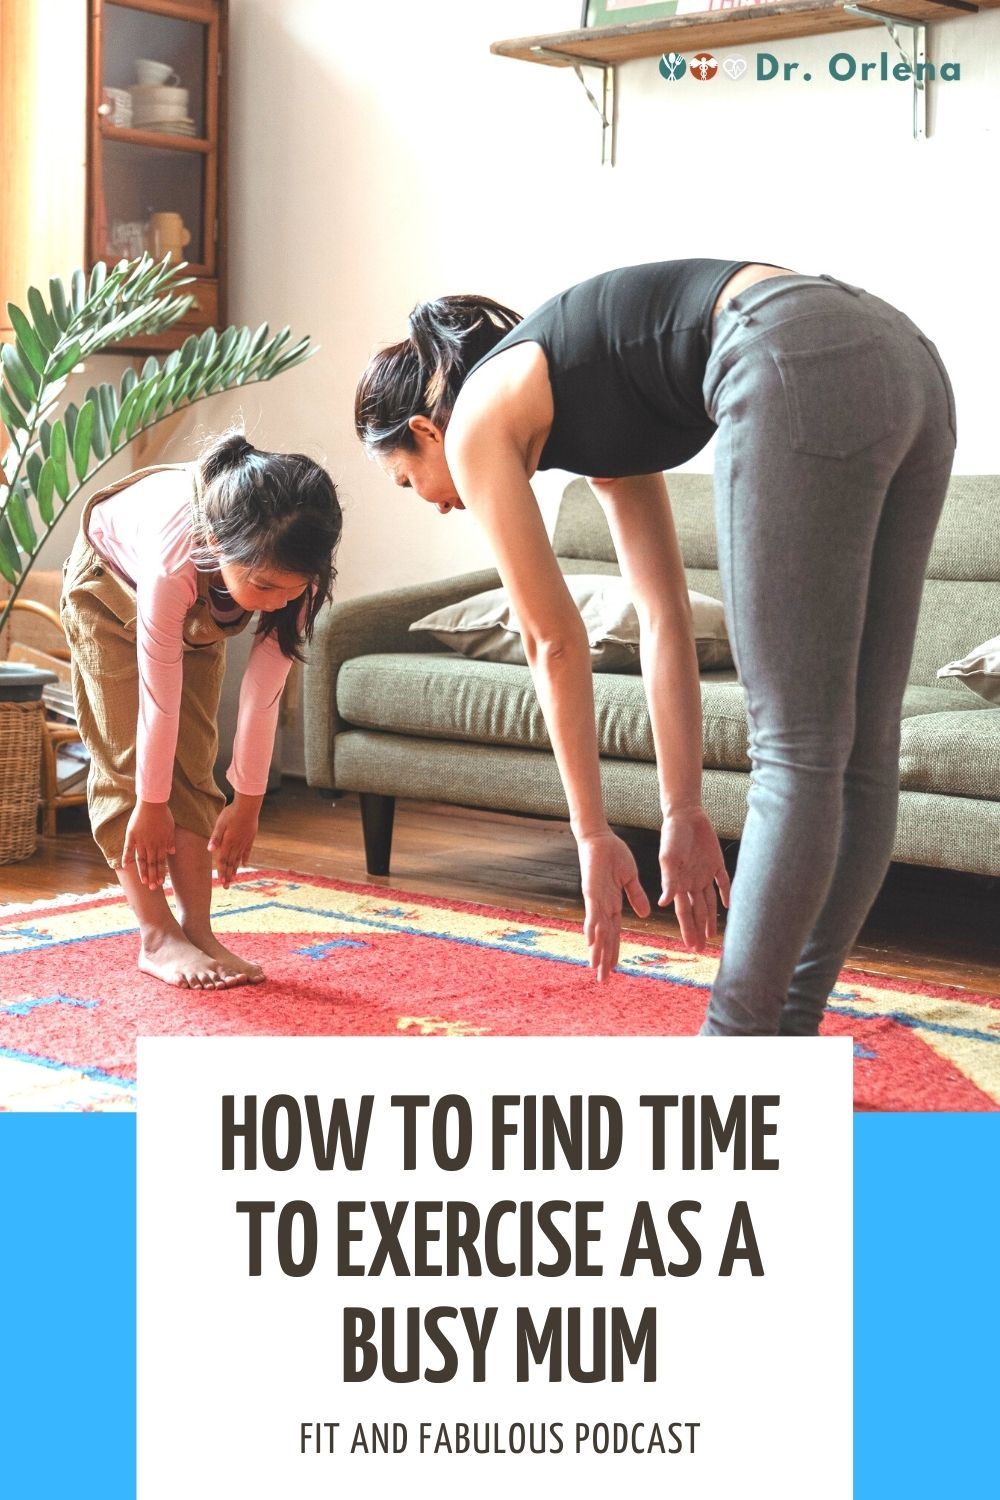 Asian mom and daughter doing exercises in their living room #momexercise #momhealth #activemom #healthymom #healthyliving